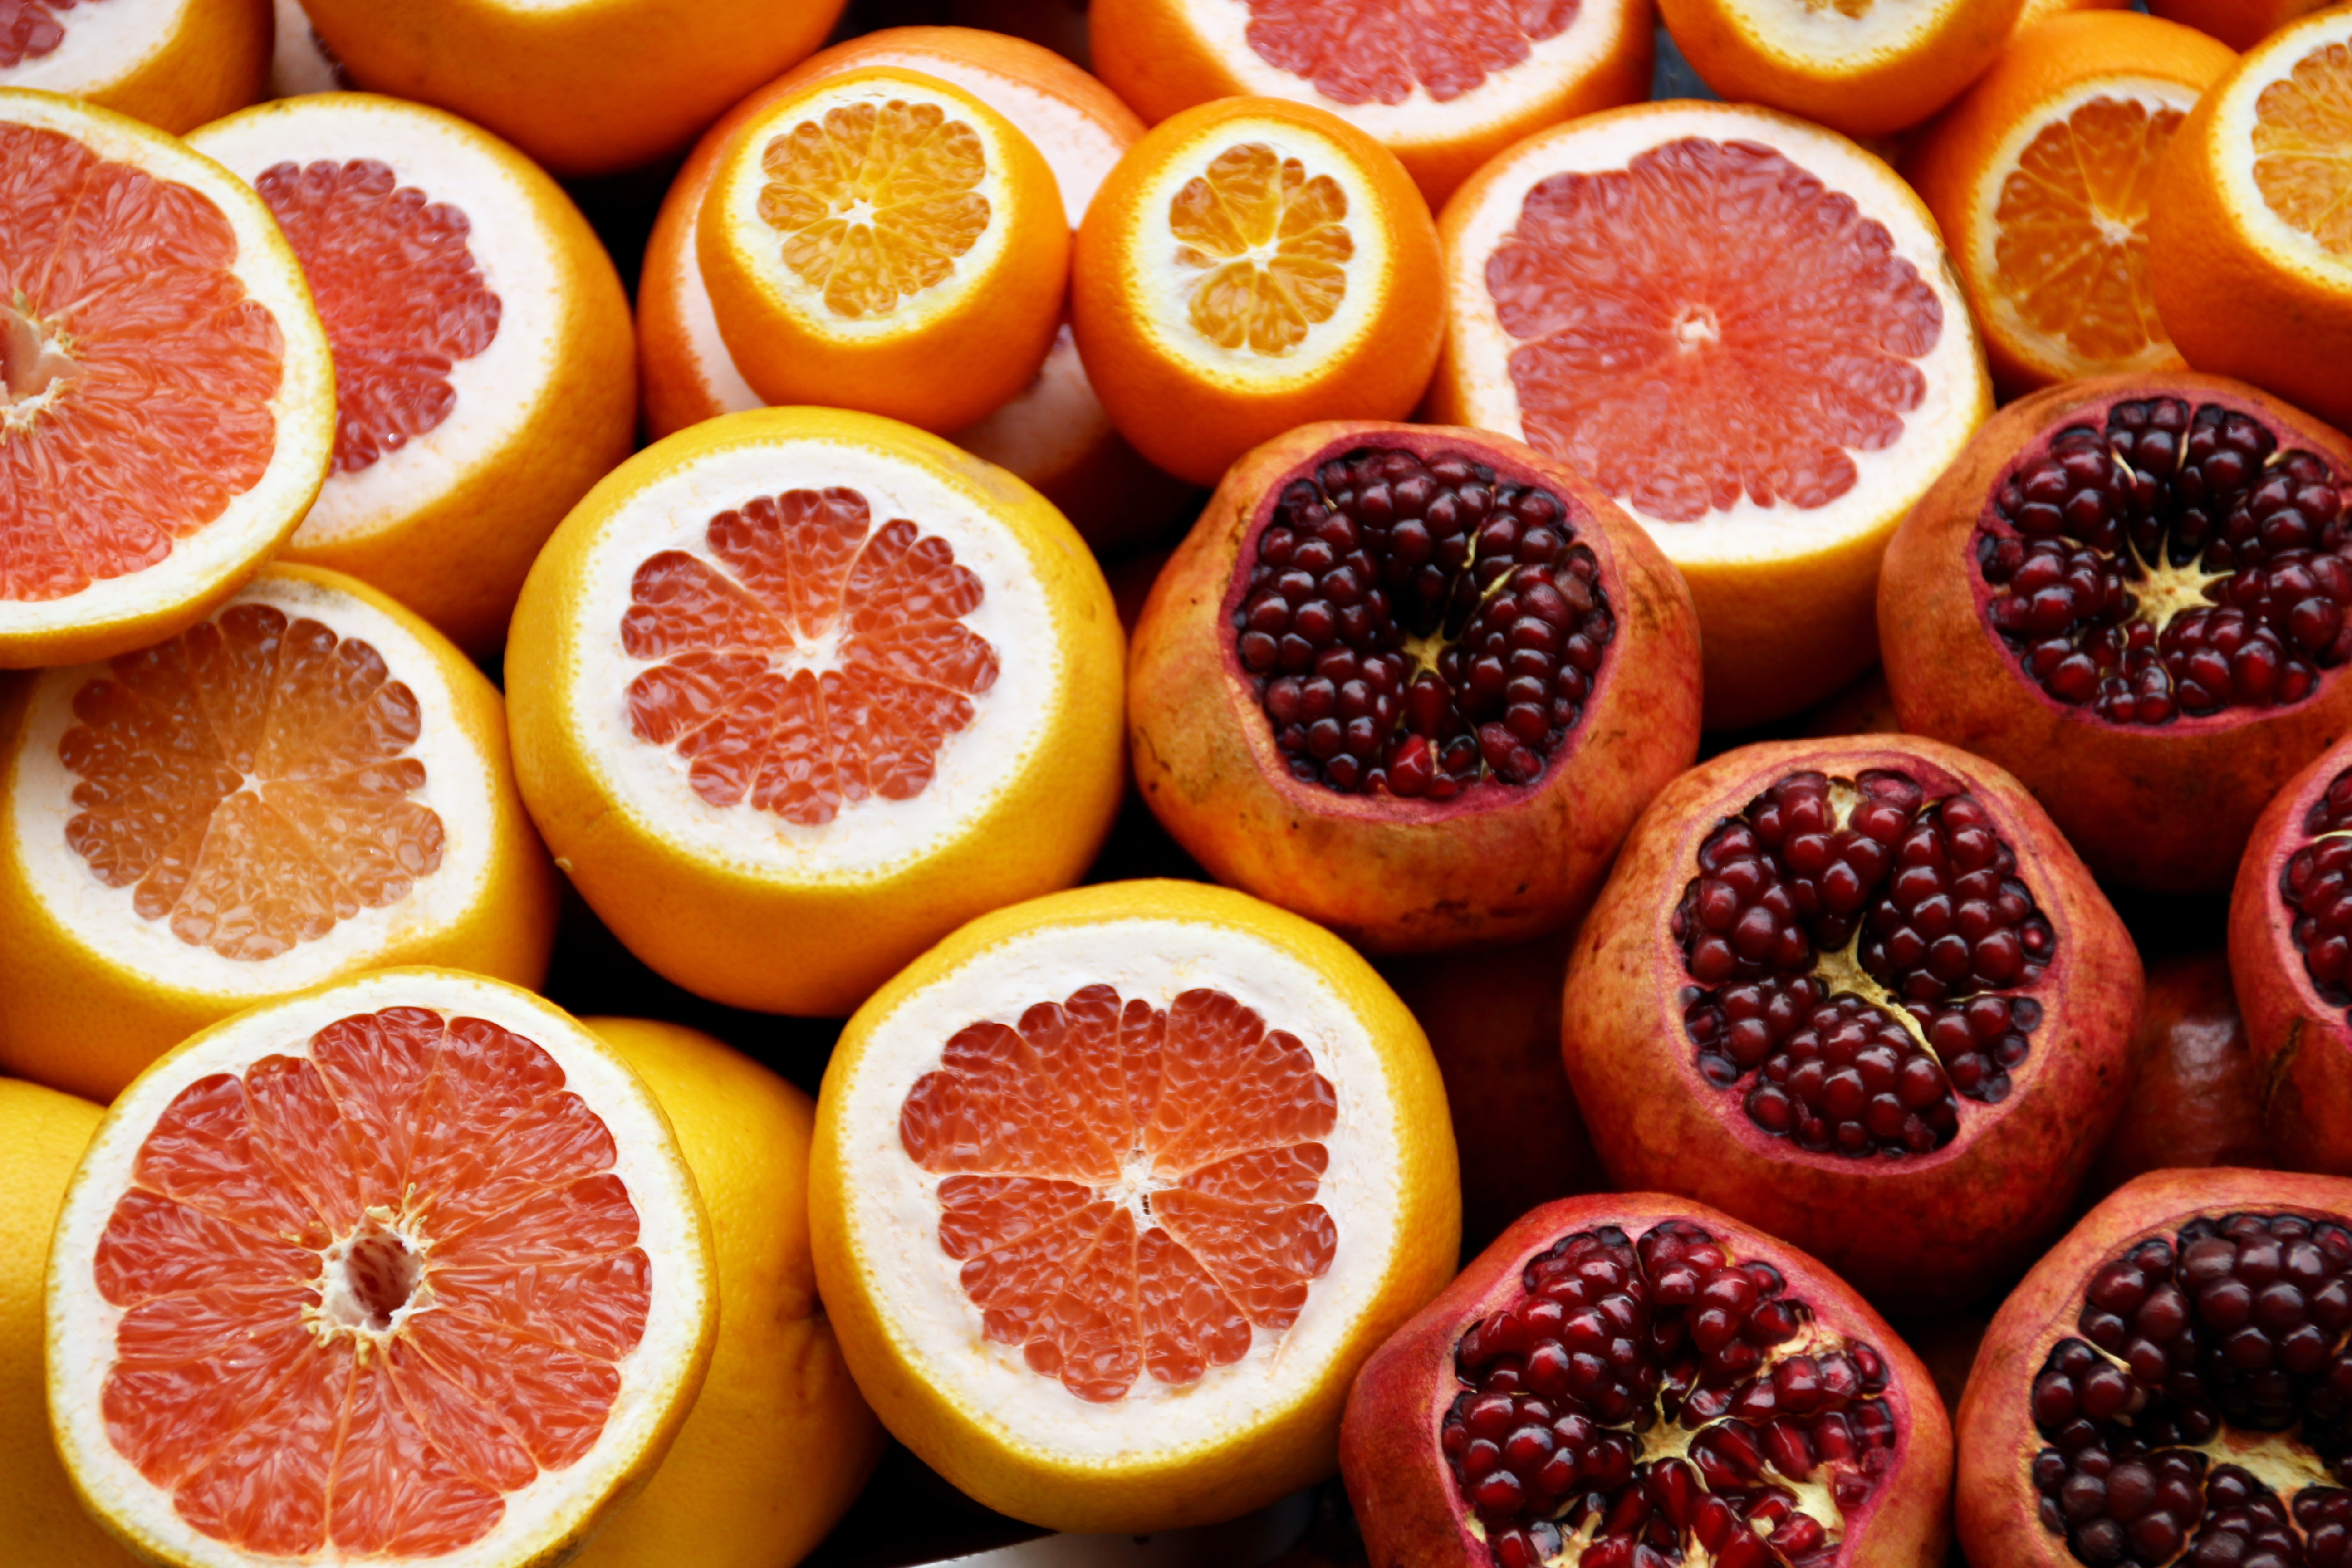 Pomegranate and orange fruits